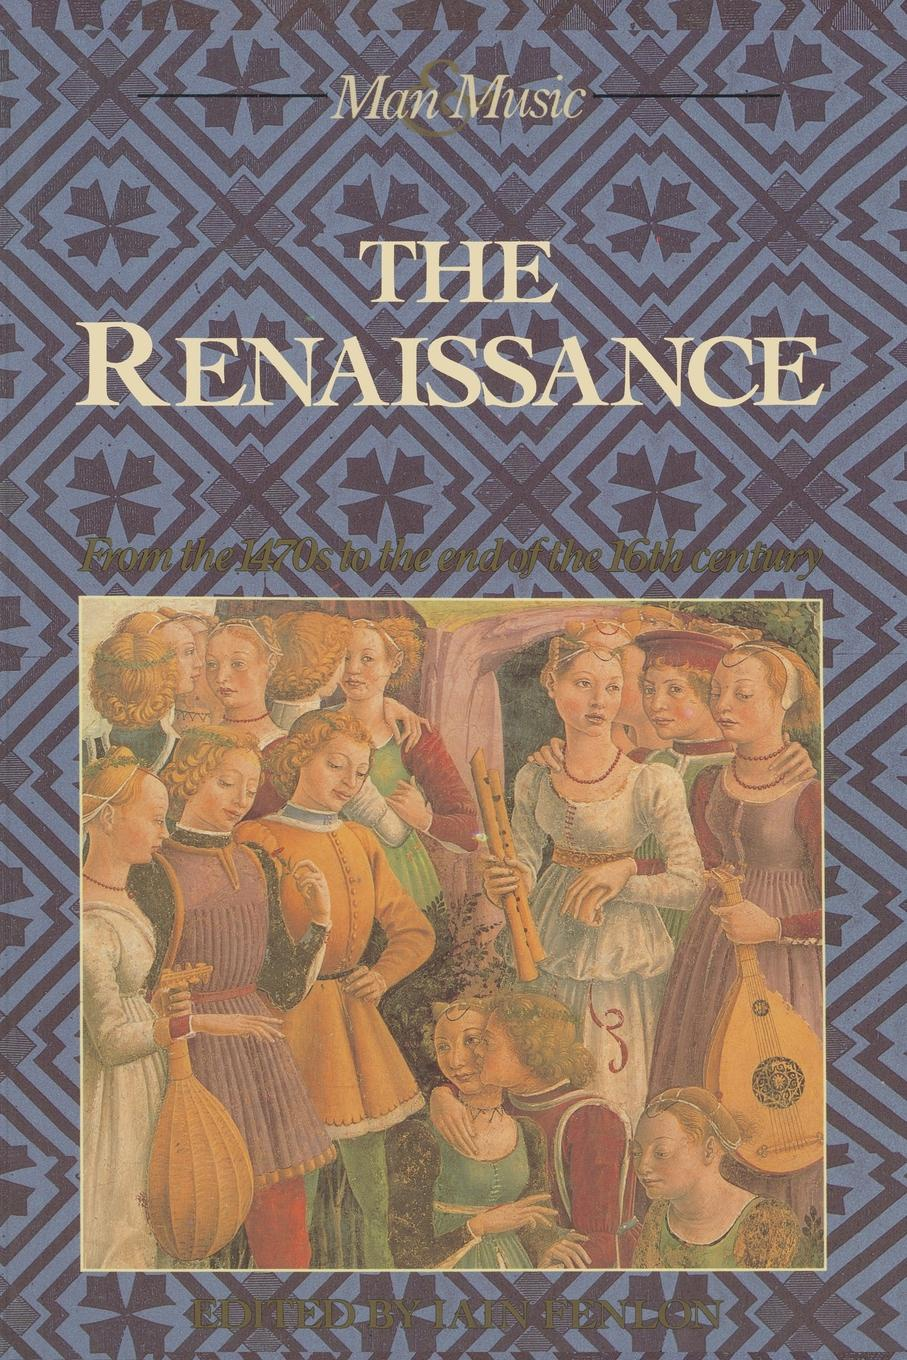 The Renaissance. From the 1470s to end of 16th century